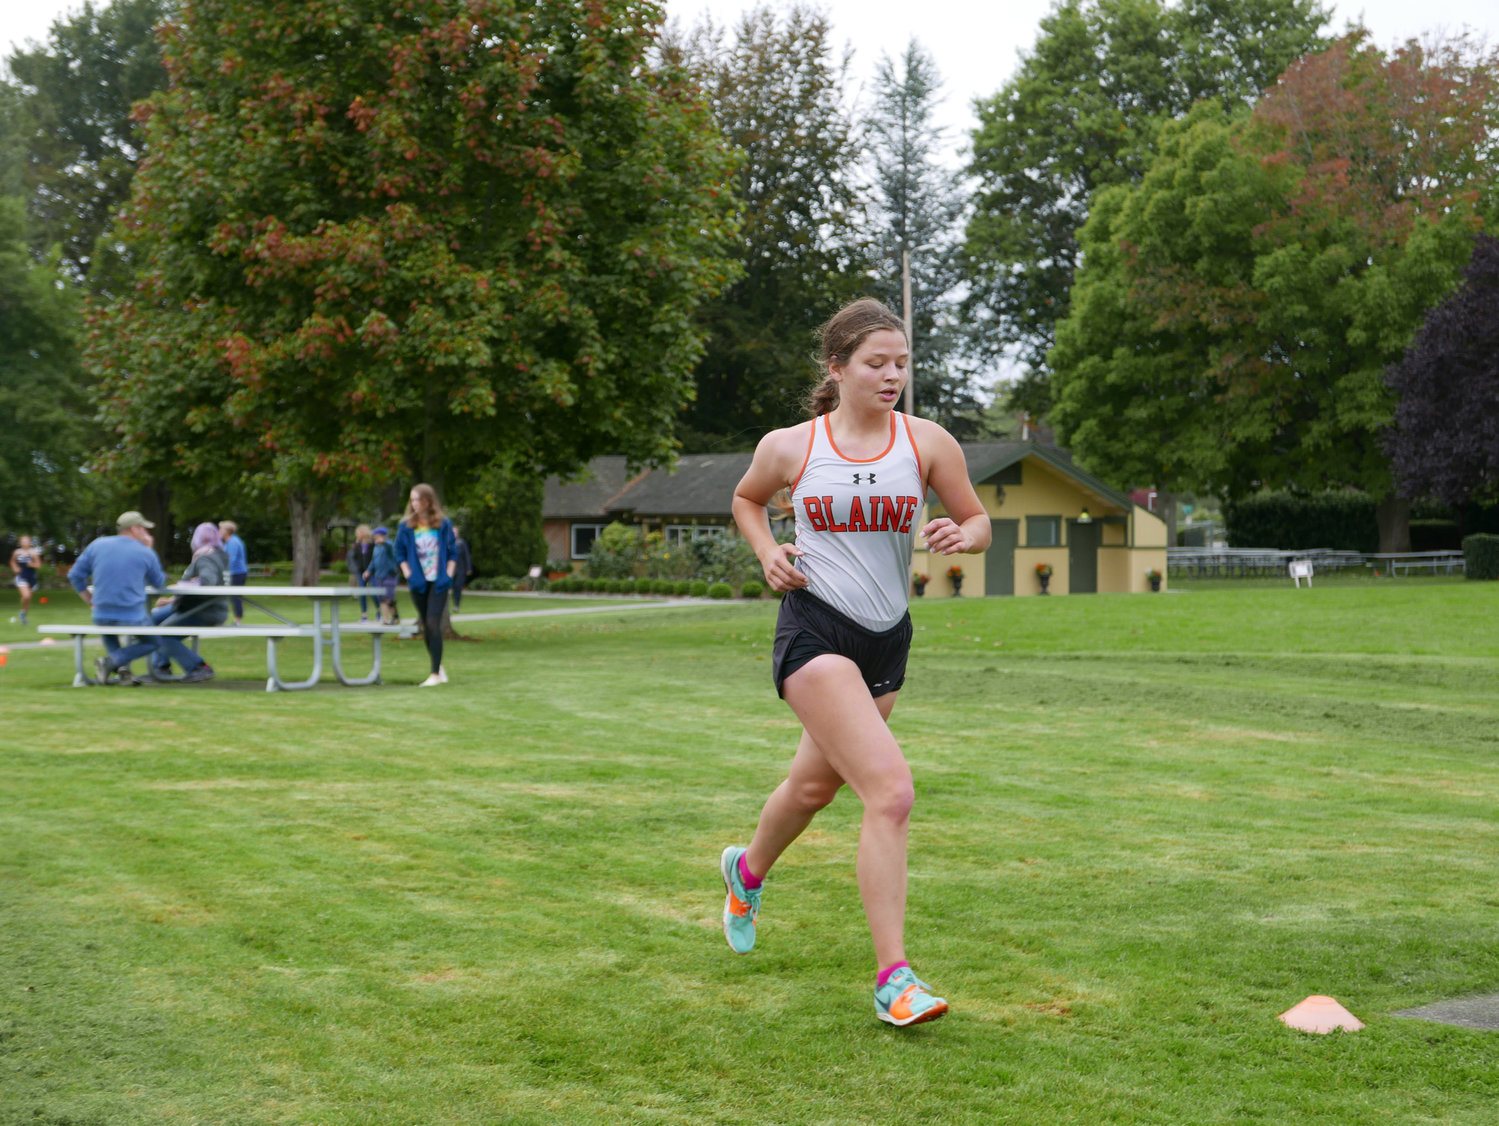 Blaine senior Taylee McCormick on September 25 at Peace Arch Park. McCormick is going to the state cross country meet on November 9.